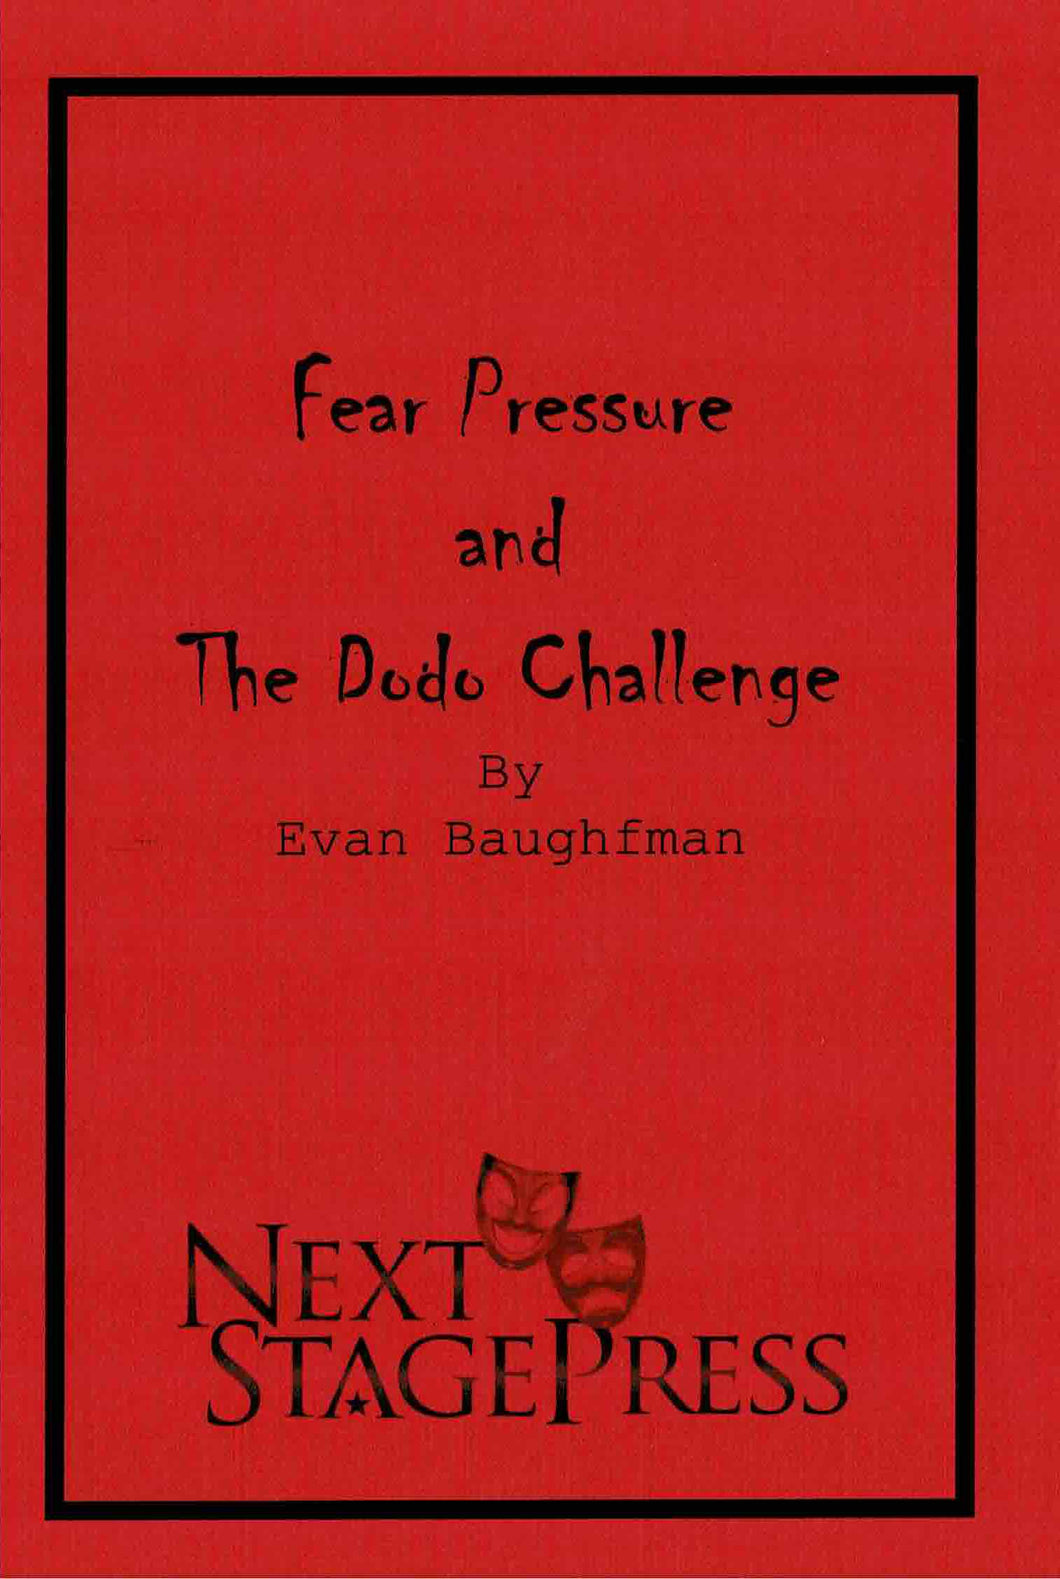 Fear Pressure and The Dodo Challenge